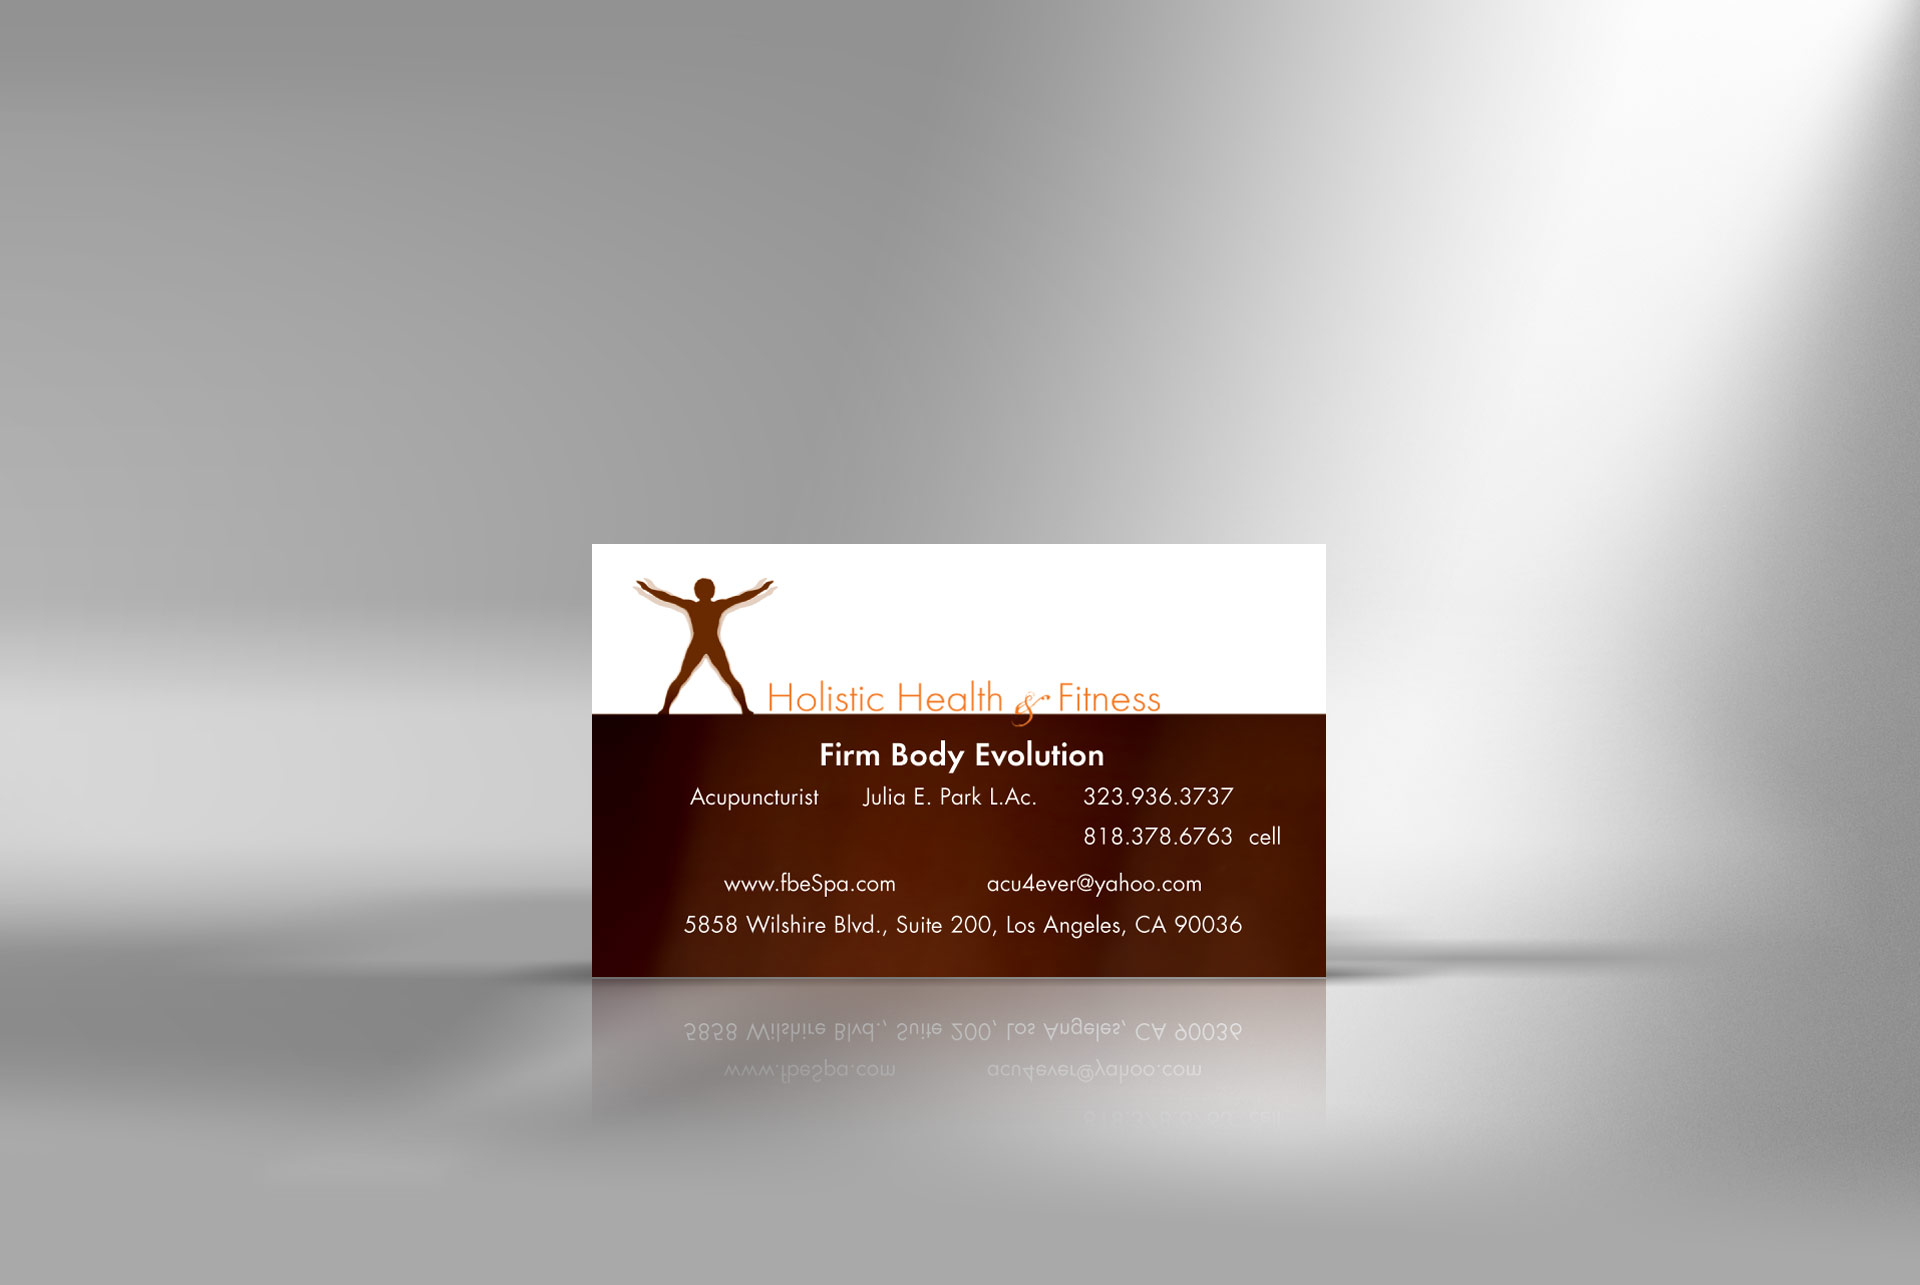 BUSINESS CARD DESIGN Black Pixel blog – Club Card Design